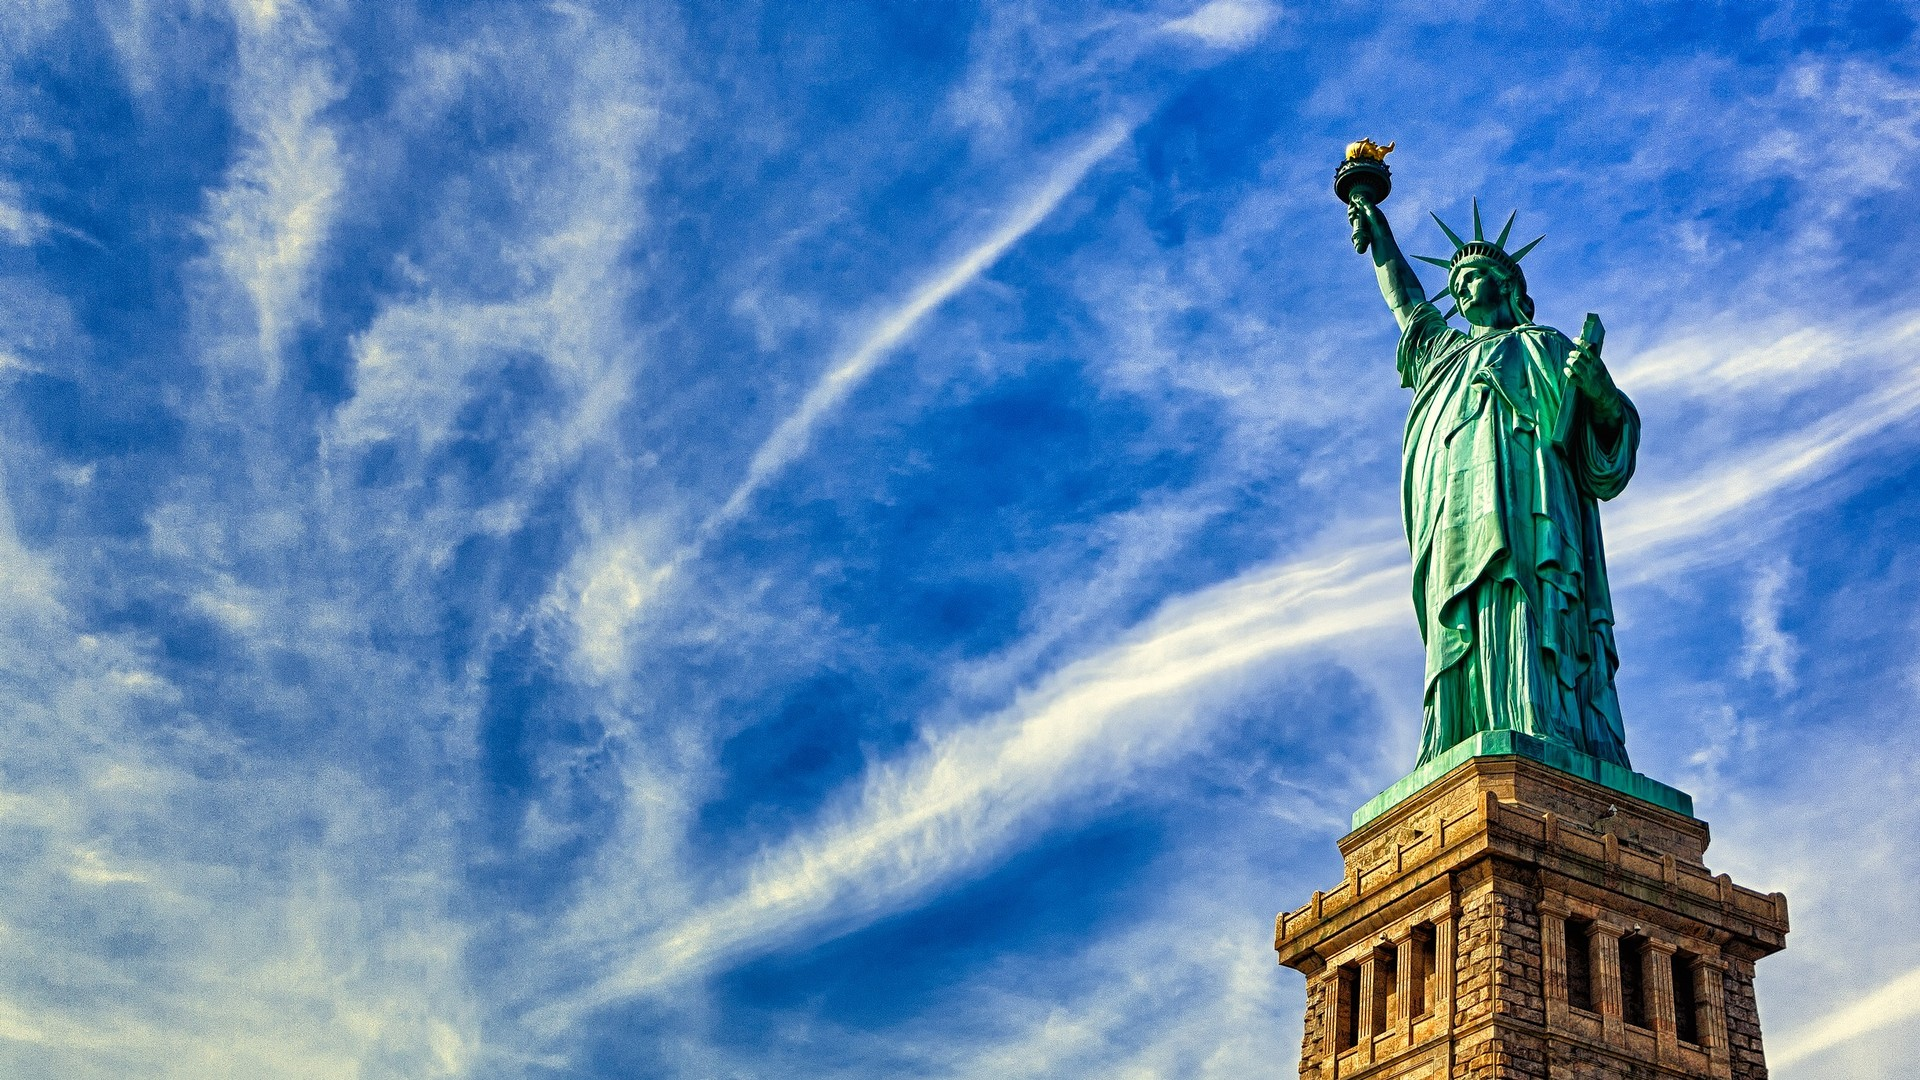 12 stunning hd statue of liberty wallpapers